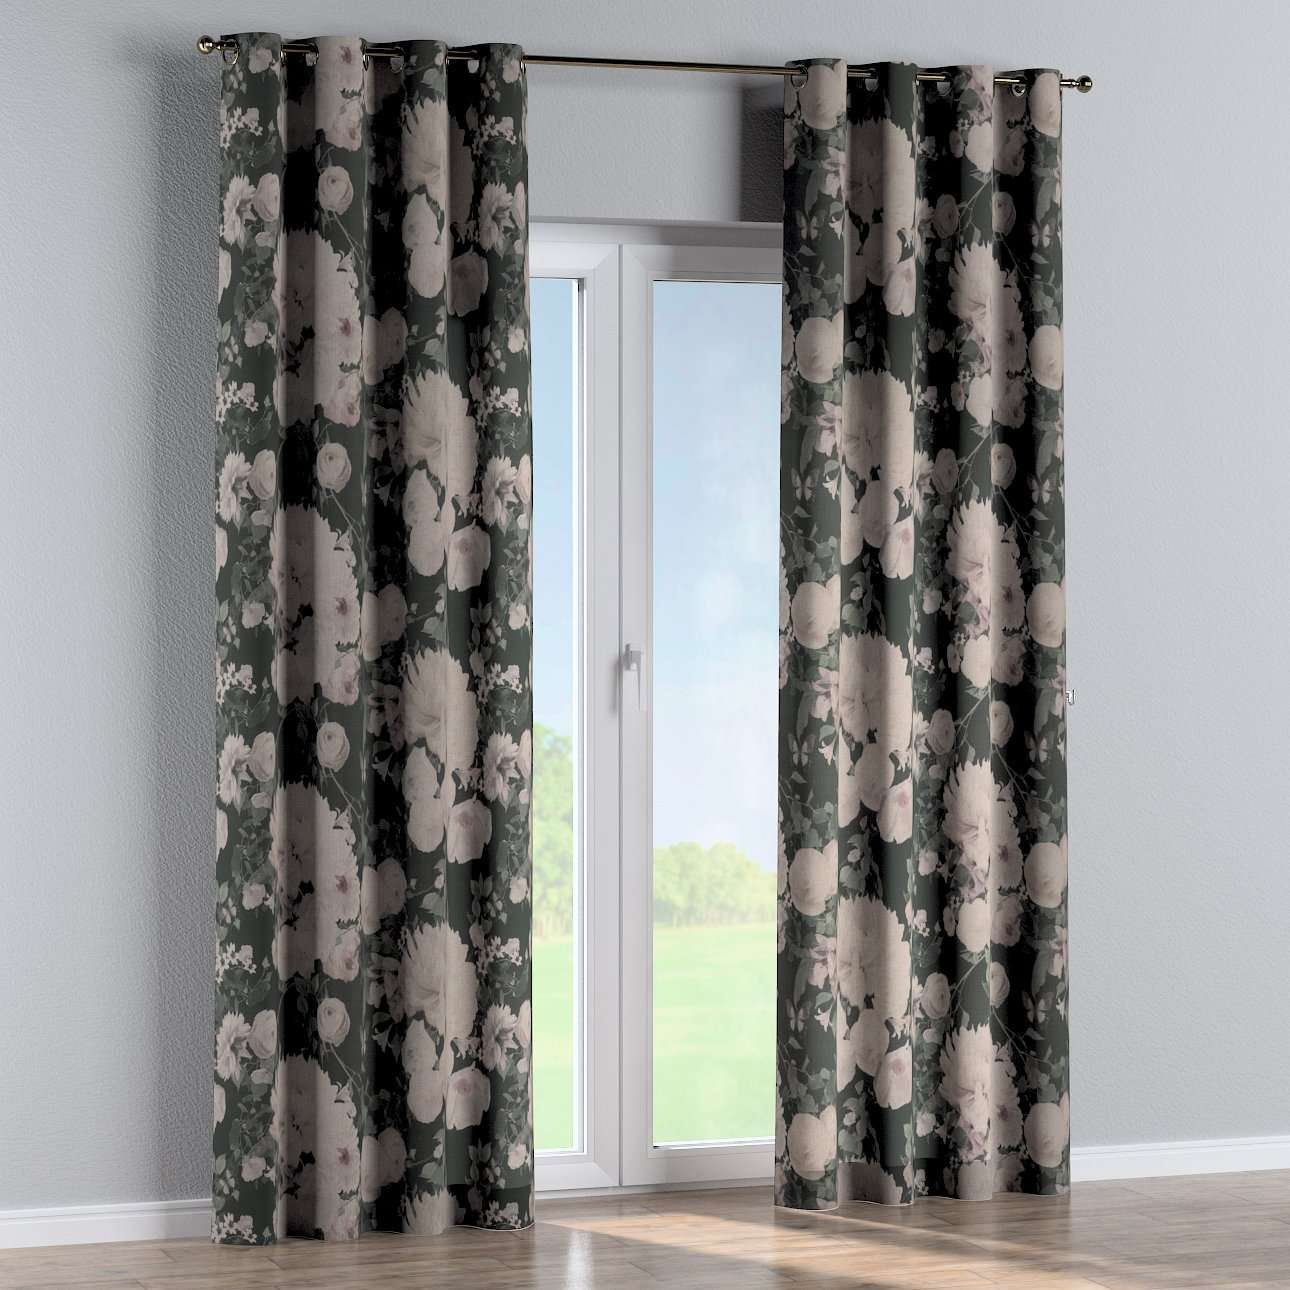 Eyelet curtains in collection Linen, fabric: 142-25